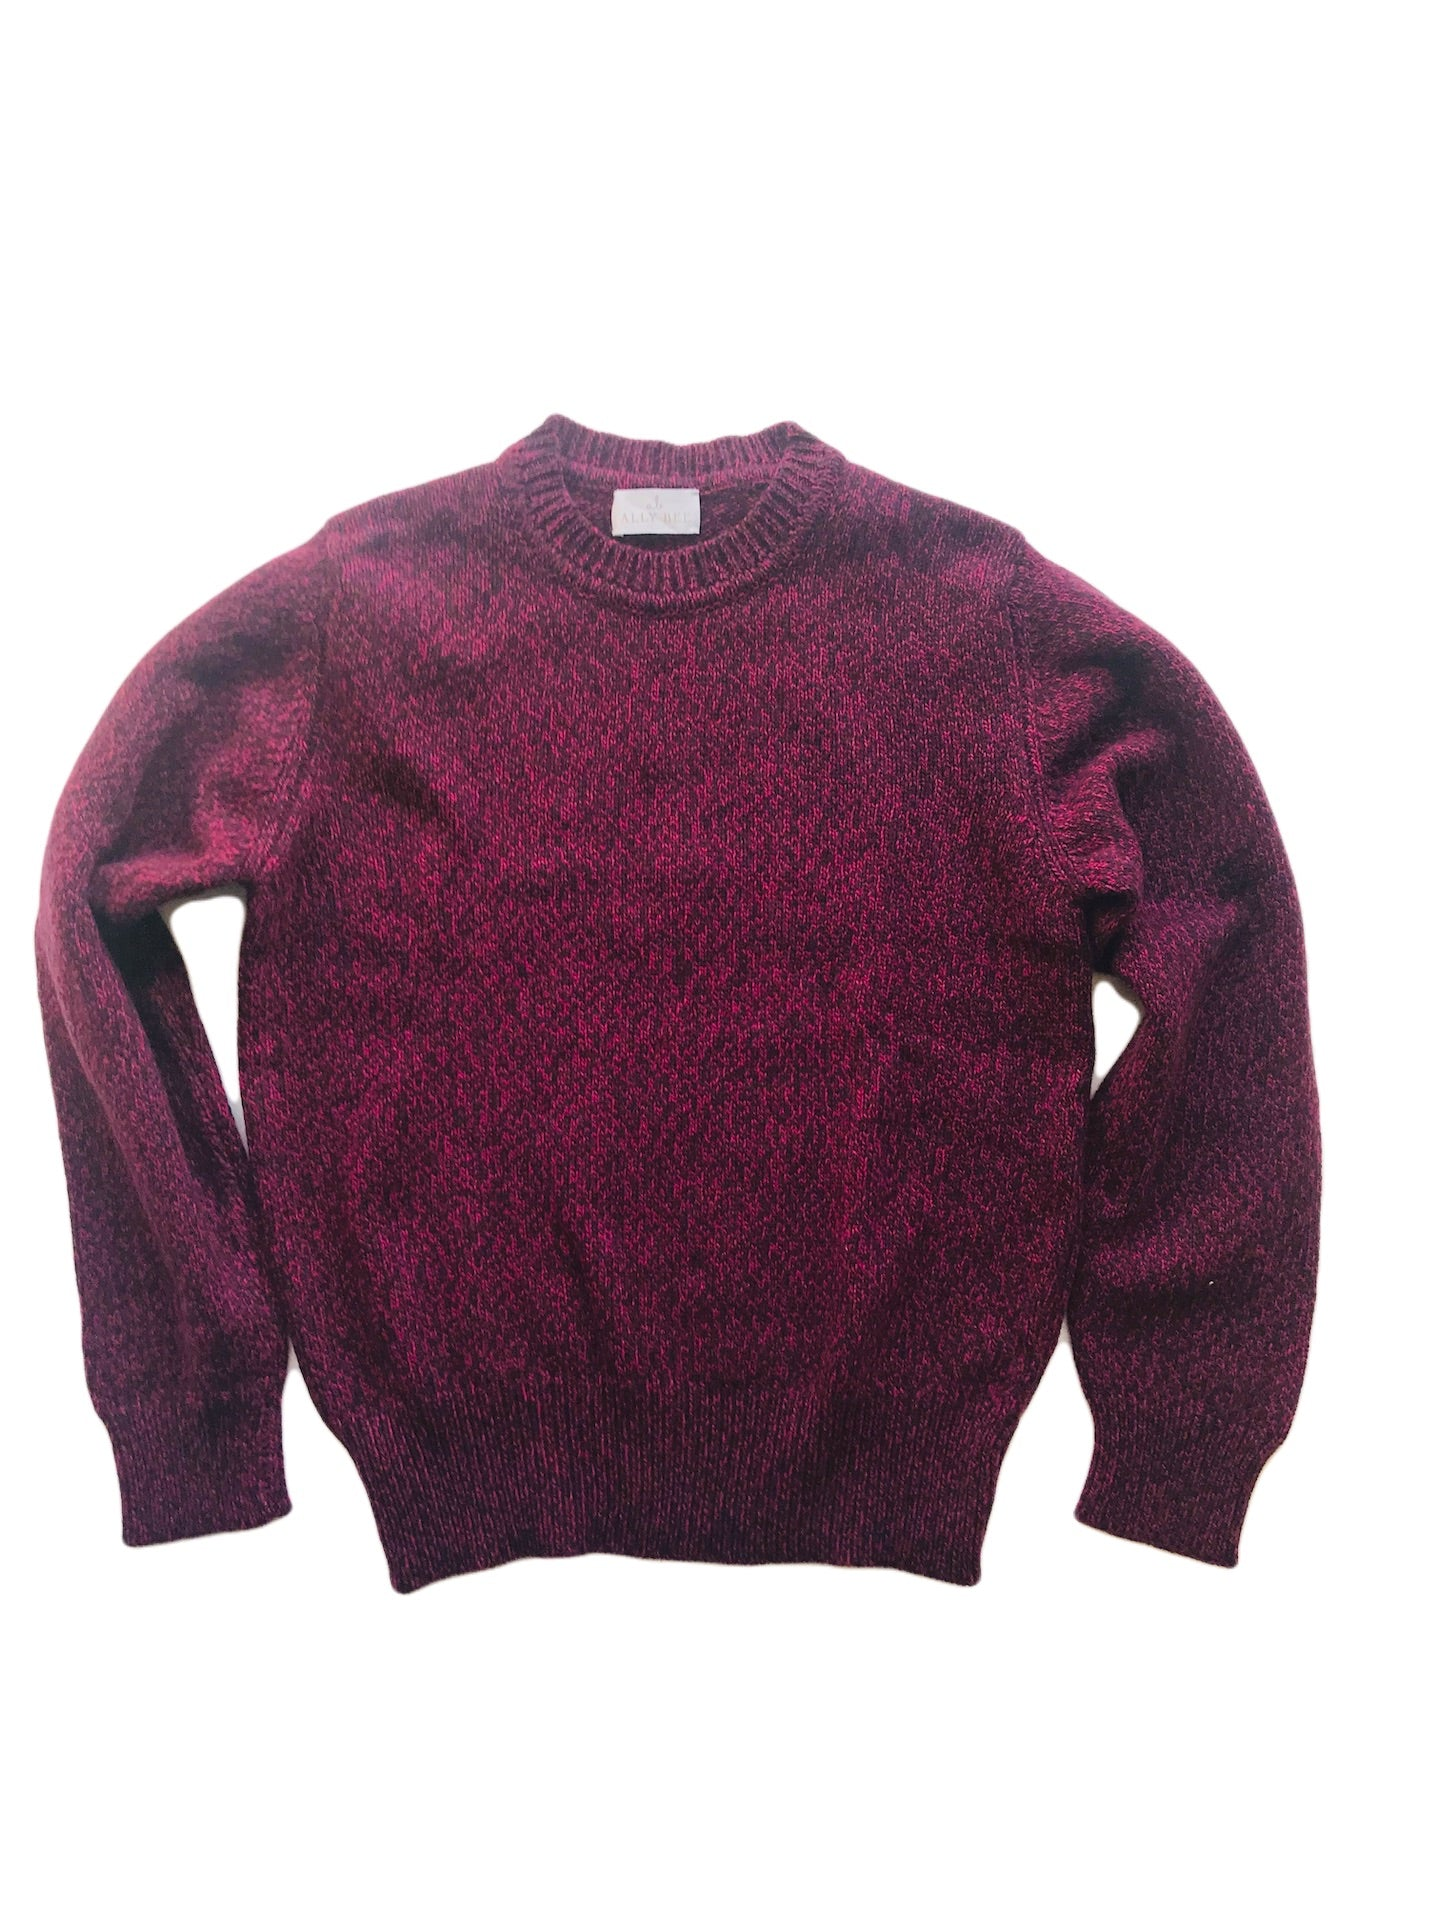 Purple flecked pink cashmere sweater from Ally Bee Knitwear